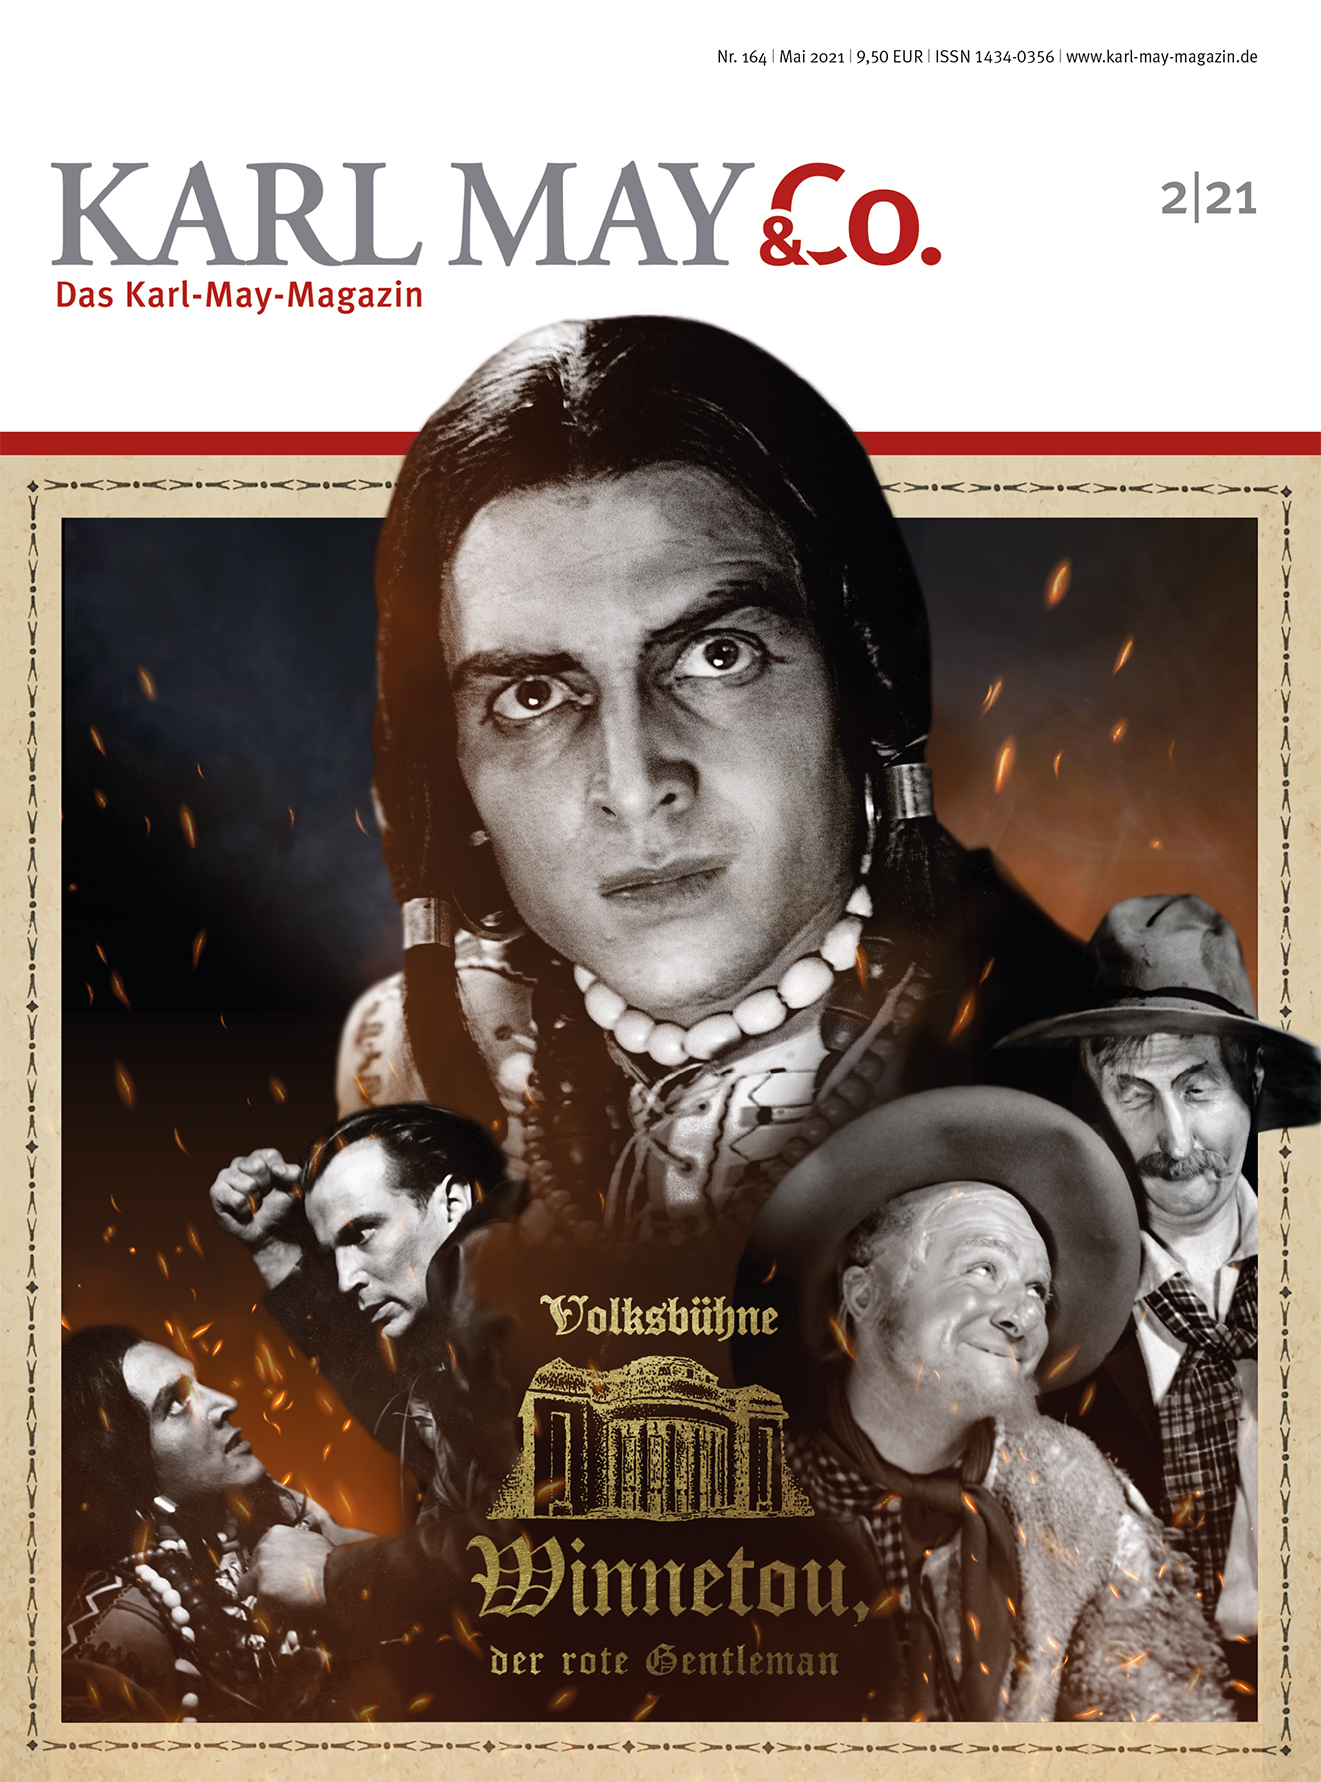 KARL MAY & Co. Nr. 164